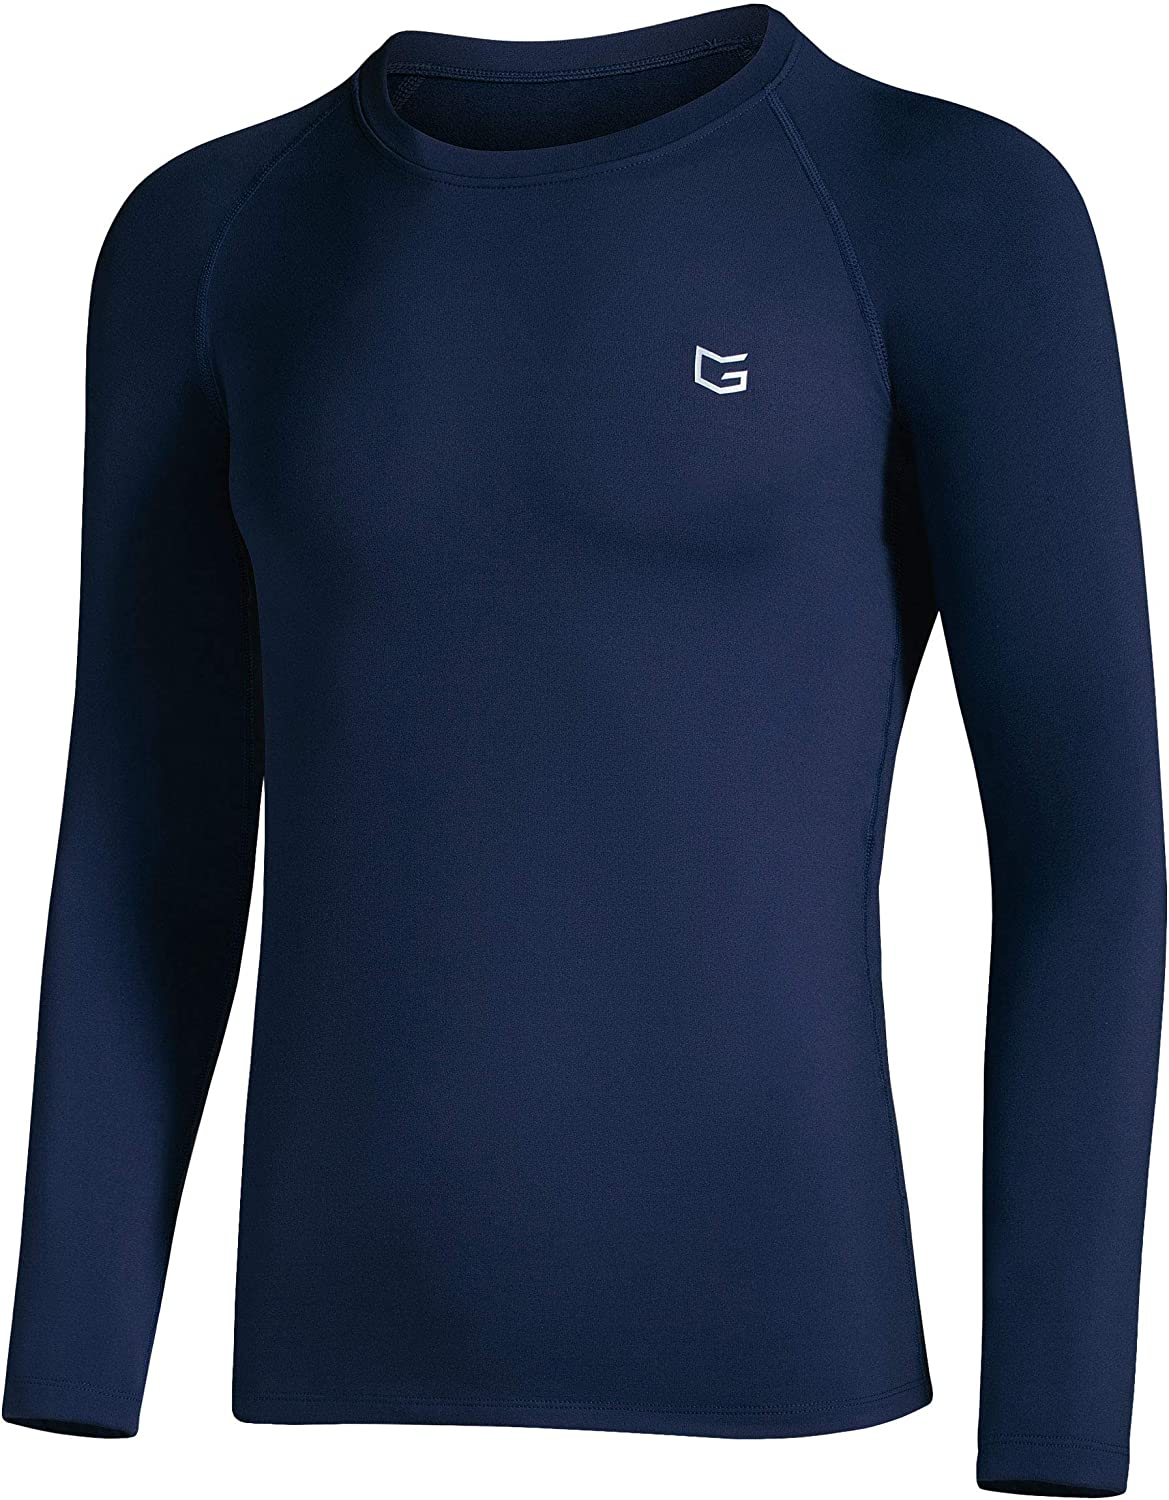 Boys' Compression Shirt Youth Fleece Thermal Long Sleeve Cold Gear Undershirts for Boys: Clothing